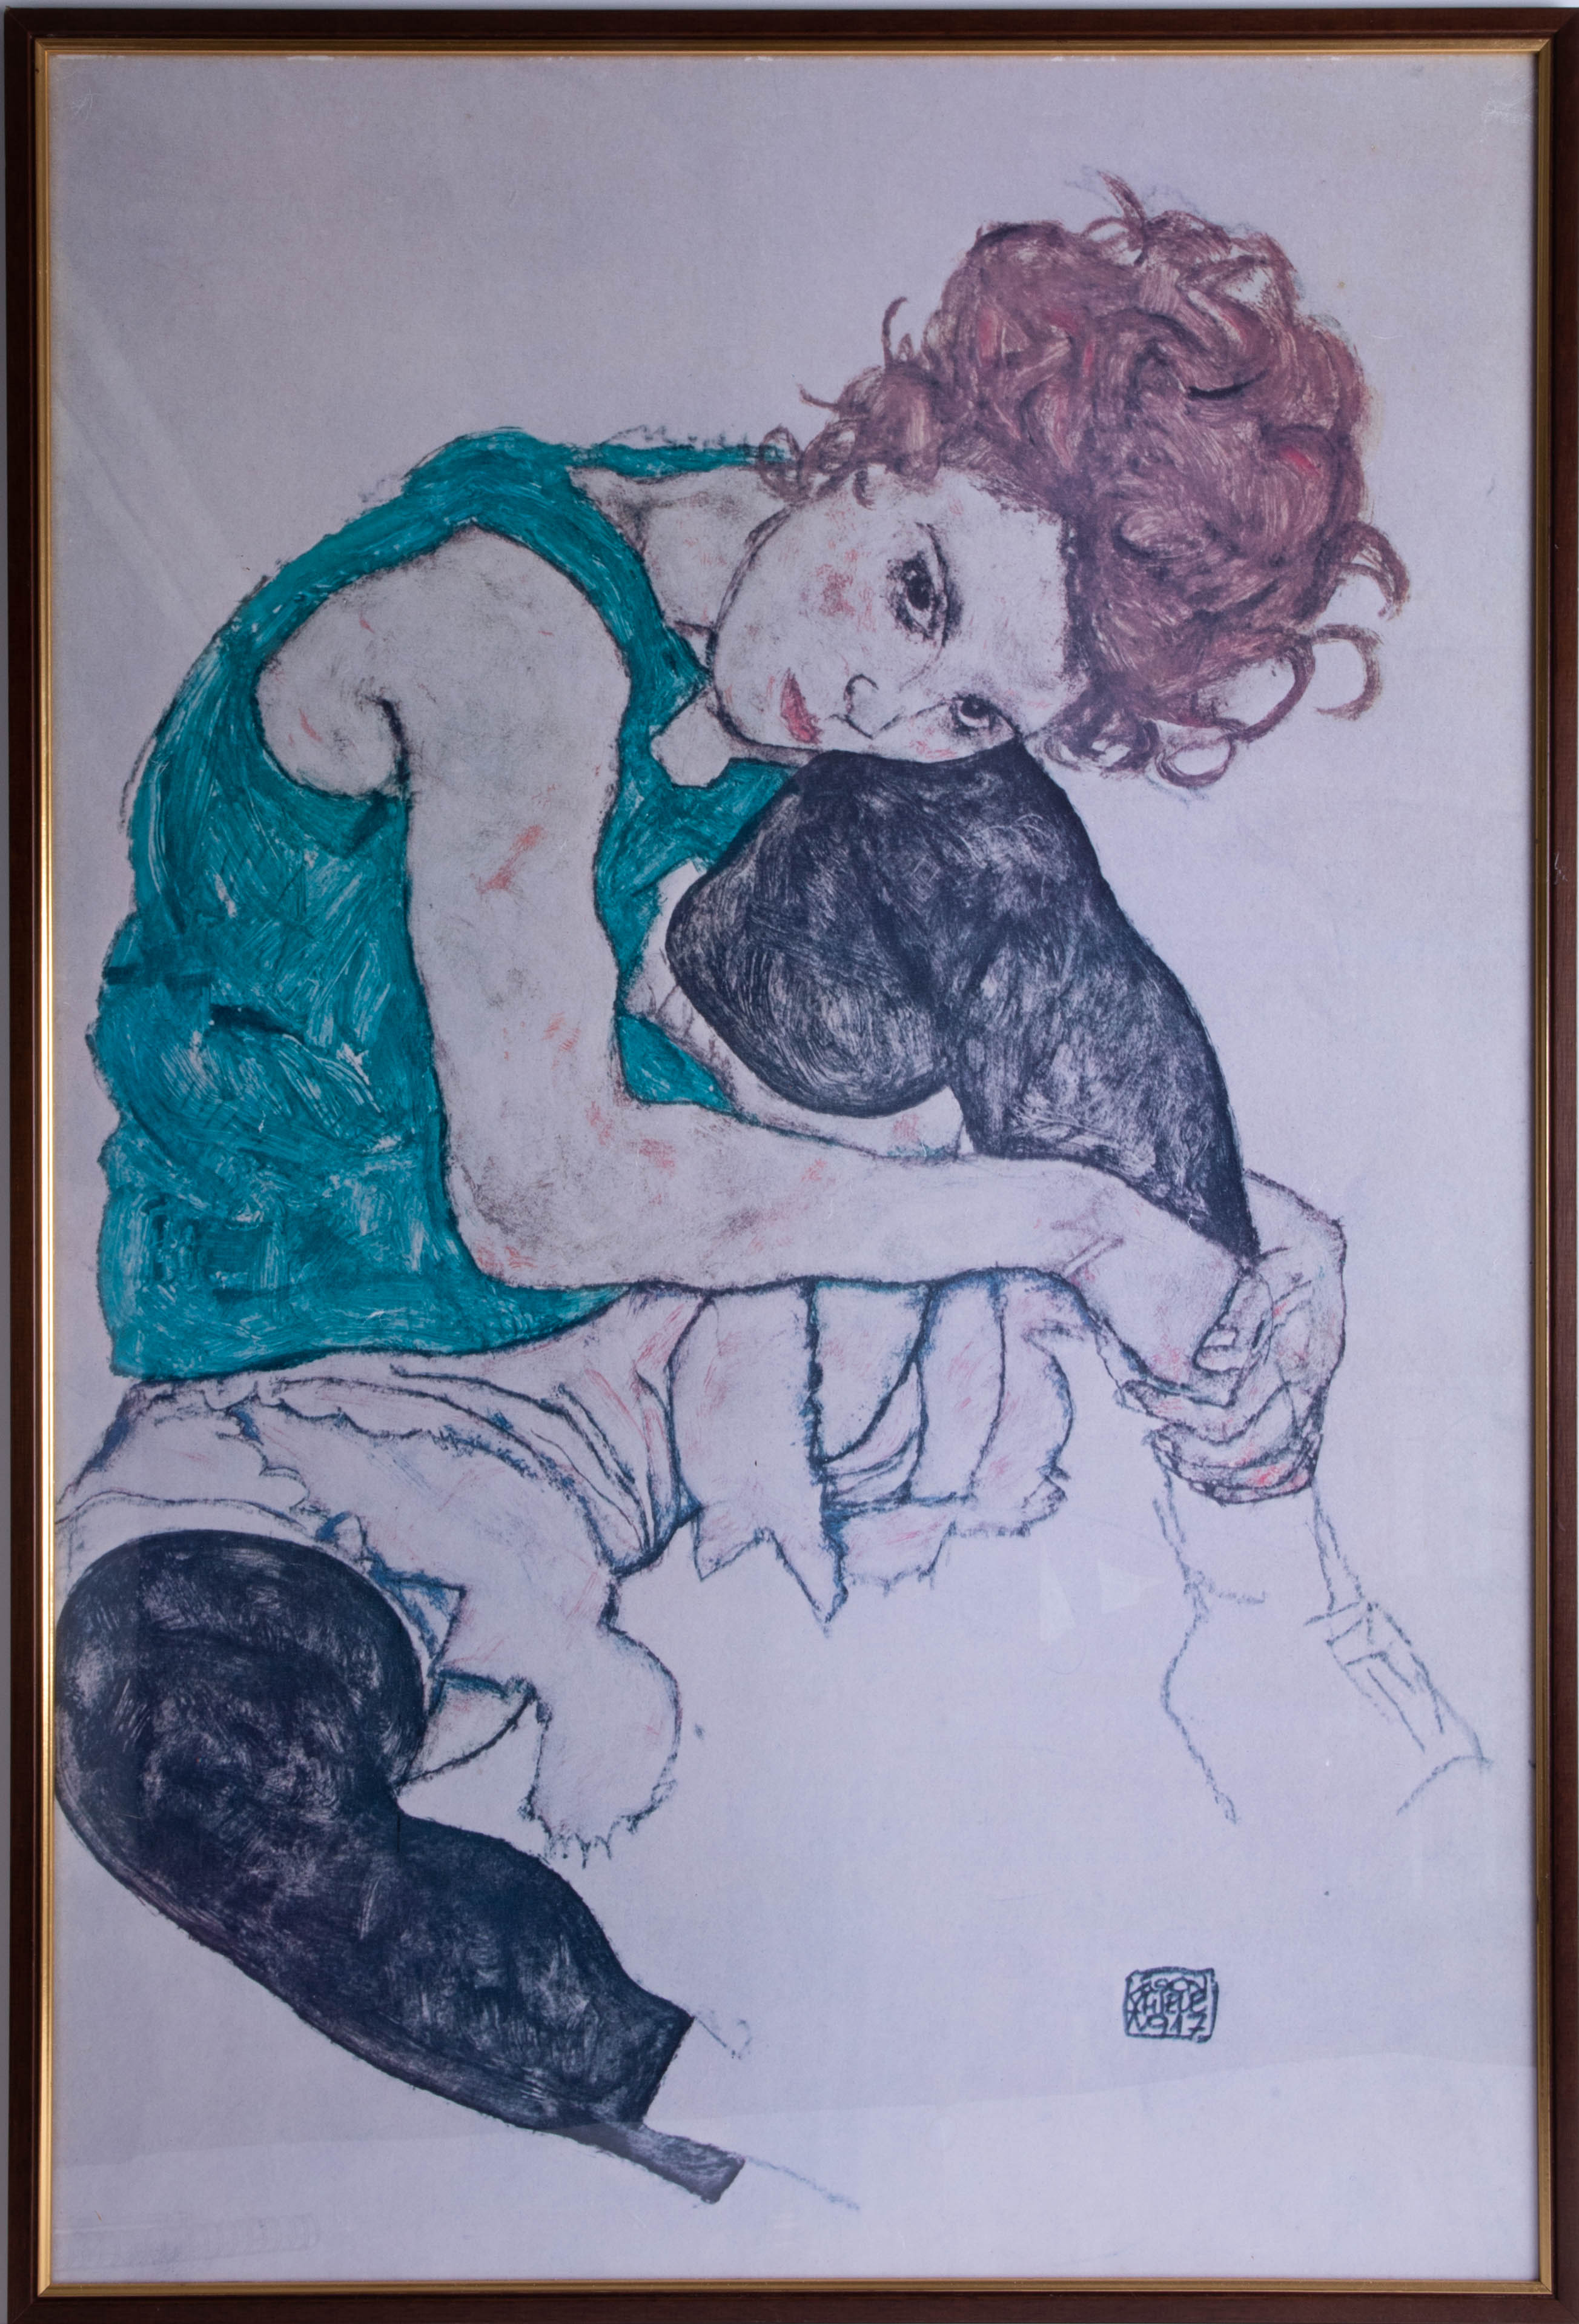 Lot 044 - Egon Schiele (1890-1918), 'Sitting Women' (Adele Herms) print, the original is in the National